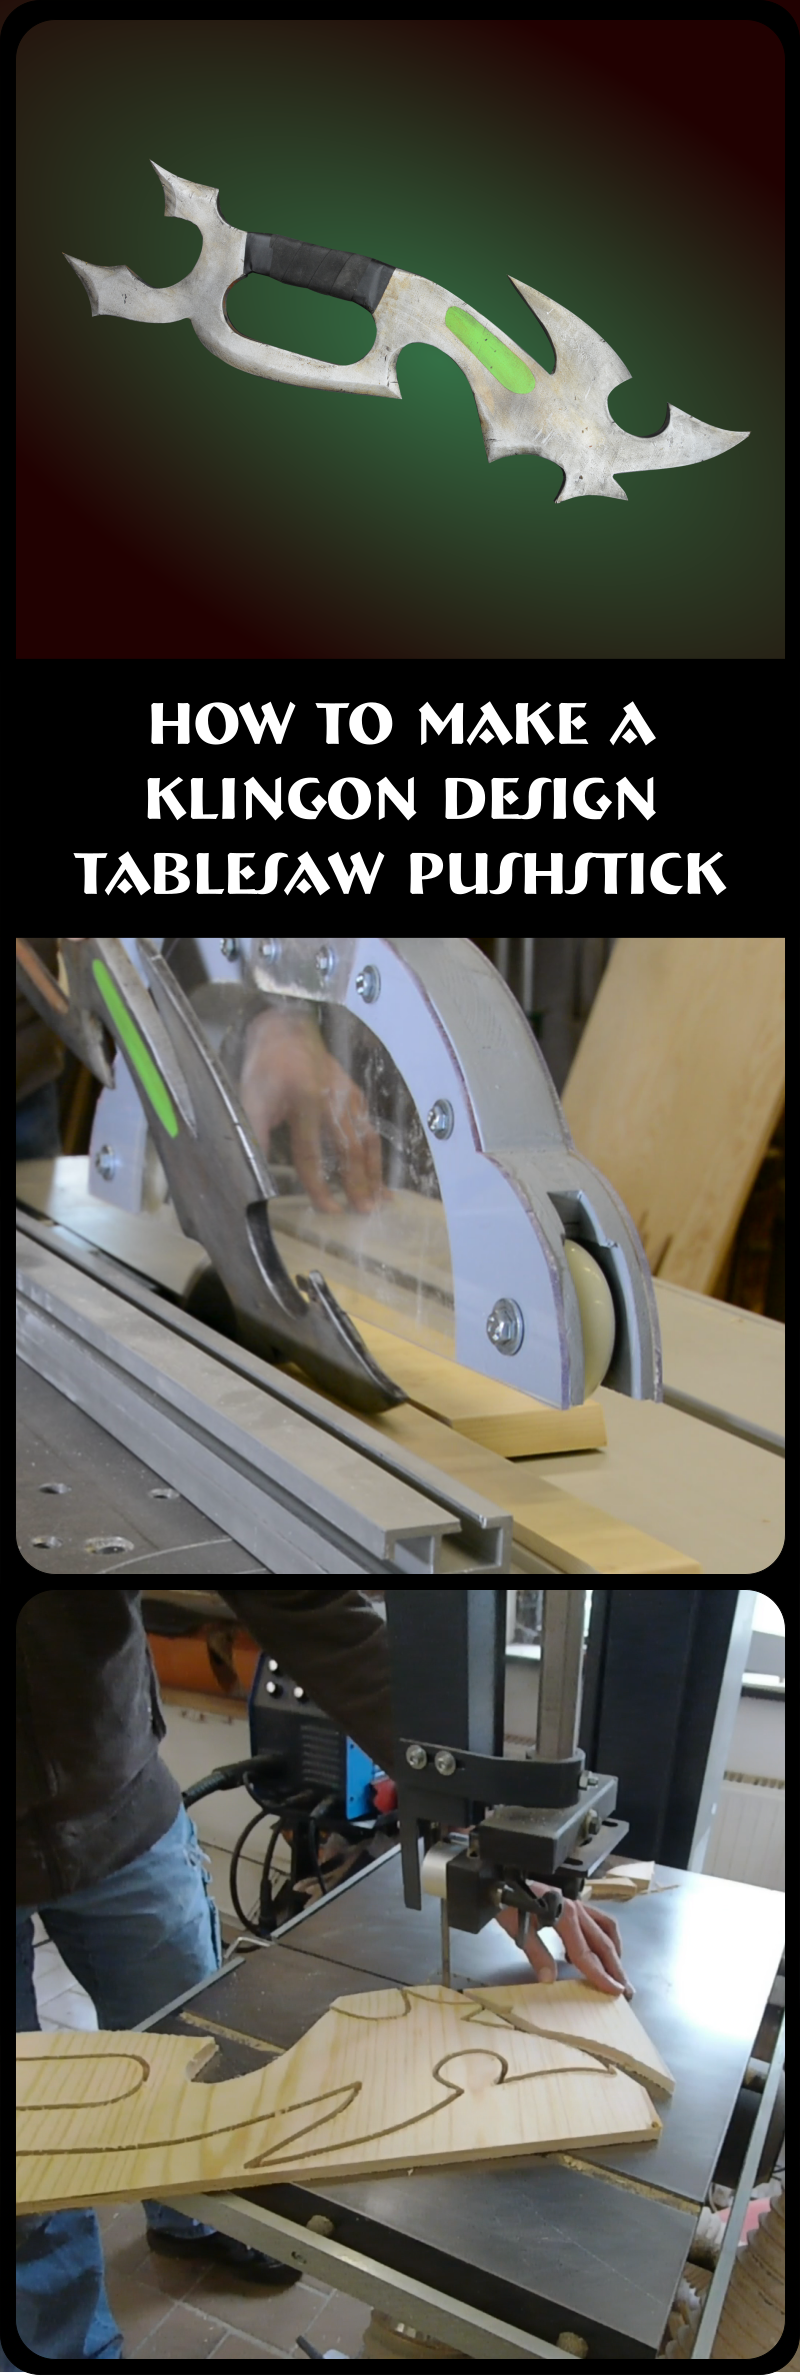 Tutorial and free plans on how to build a unique tablesaw push stick designed after klingon weapons